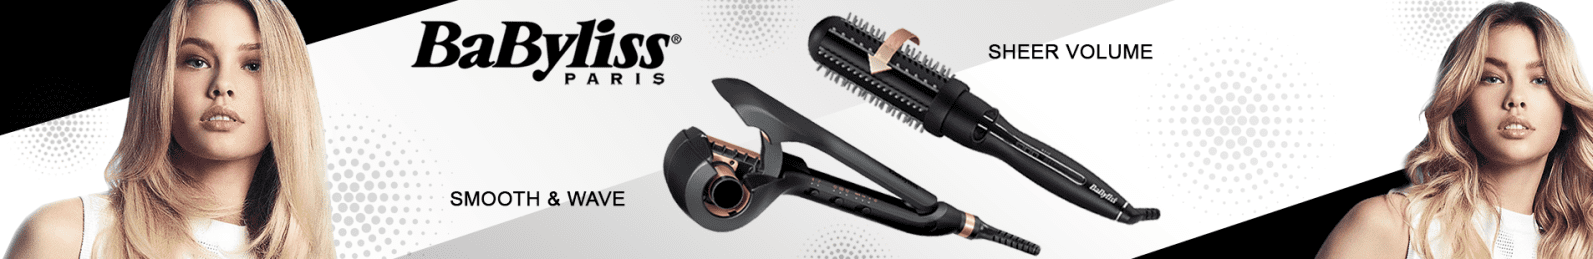 Babyliss Paris Official